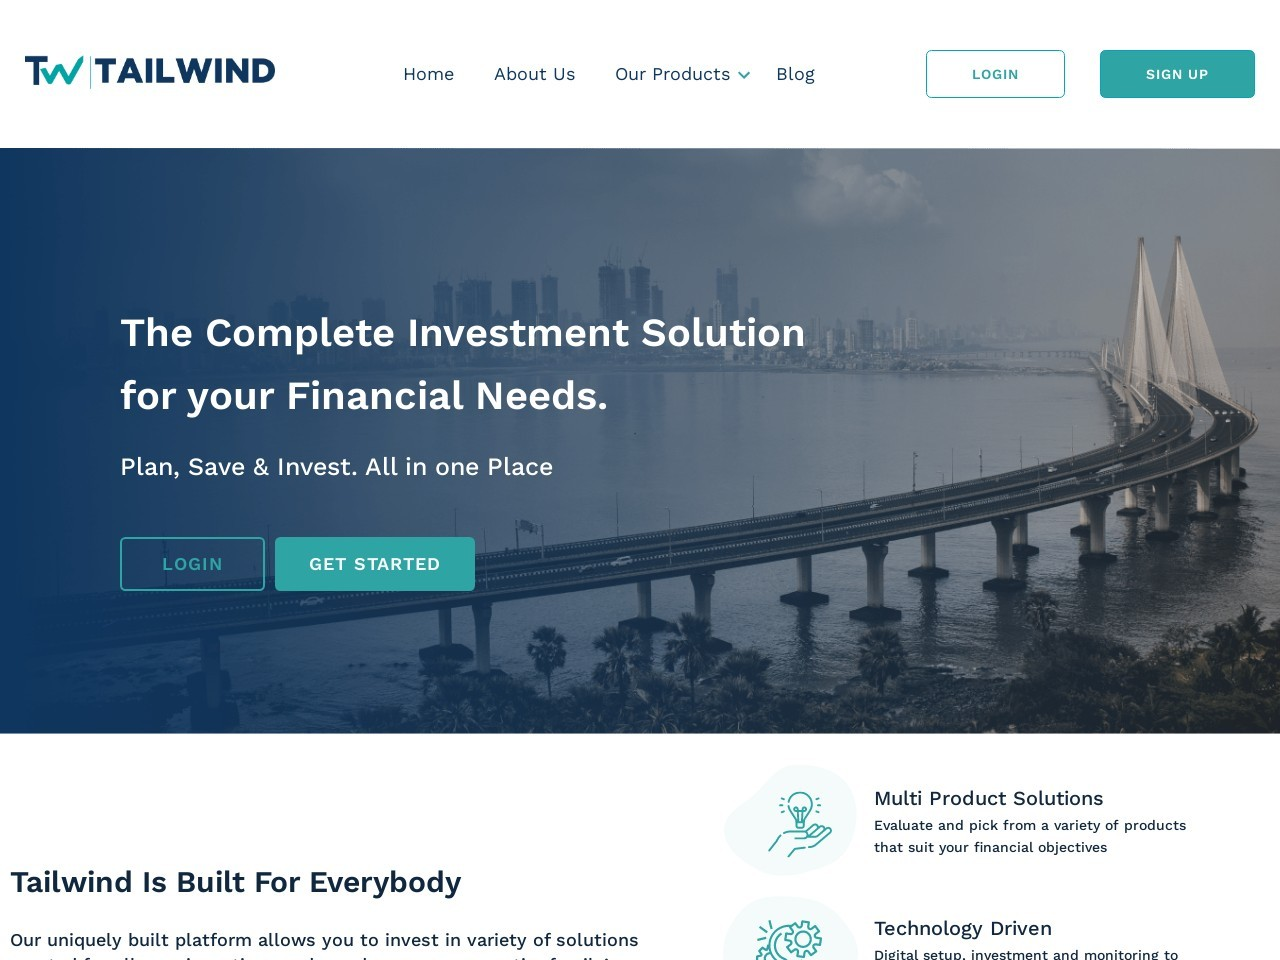 https://tailwindfin.com/investment-planning-phases-accumulation-vs-distribution/